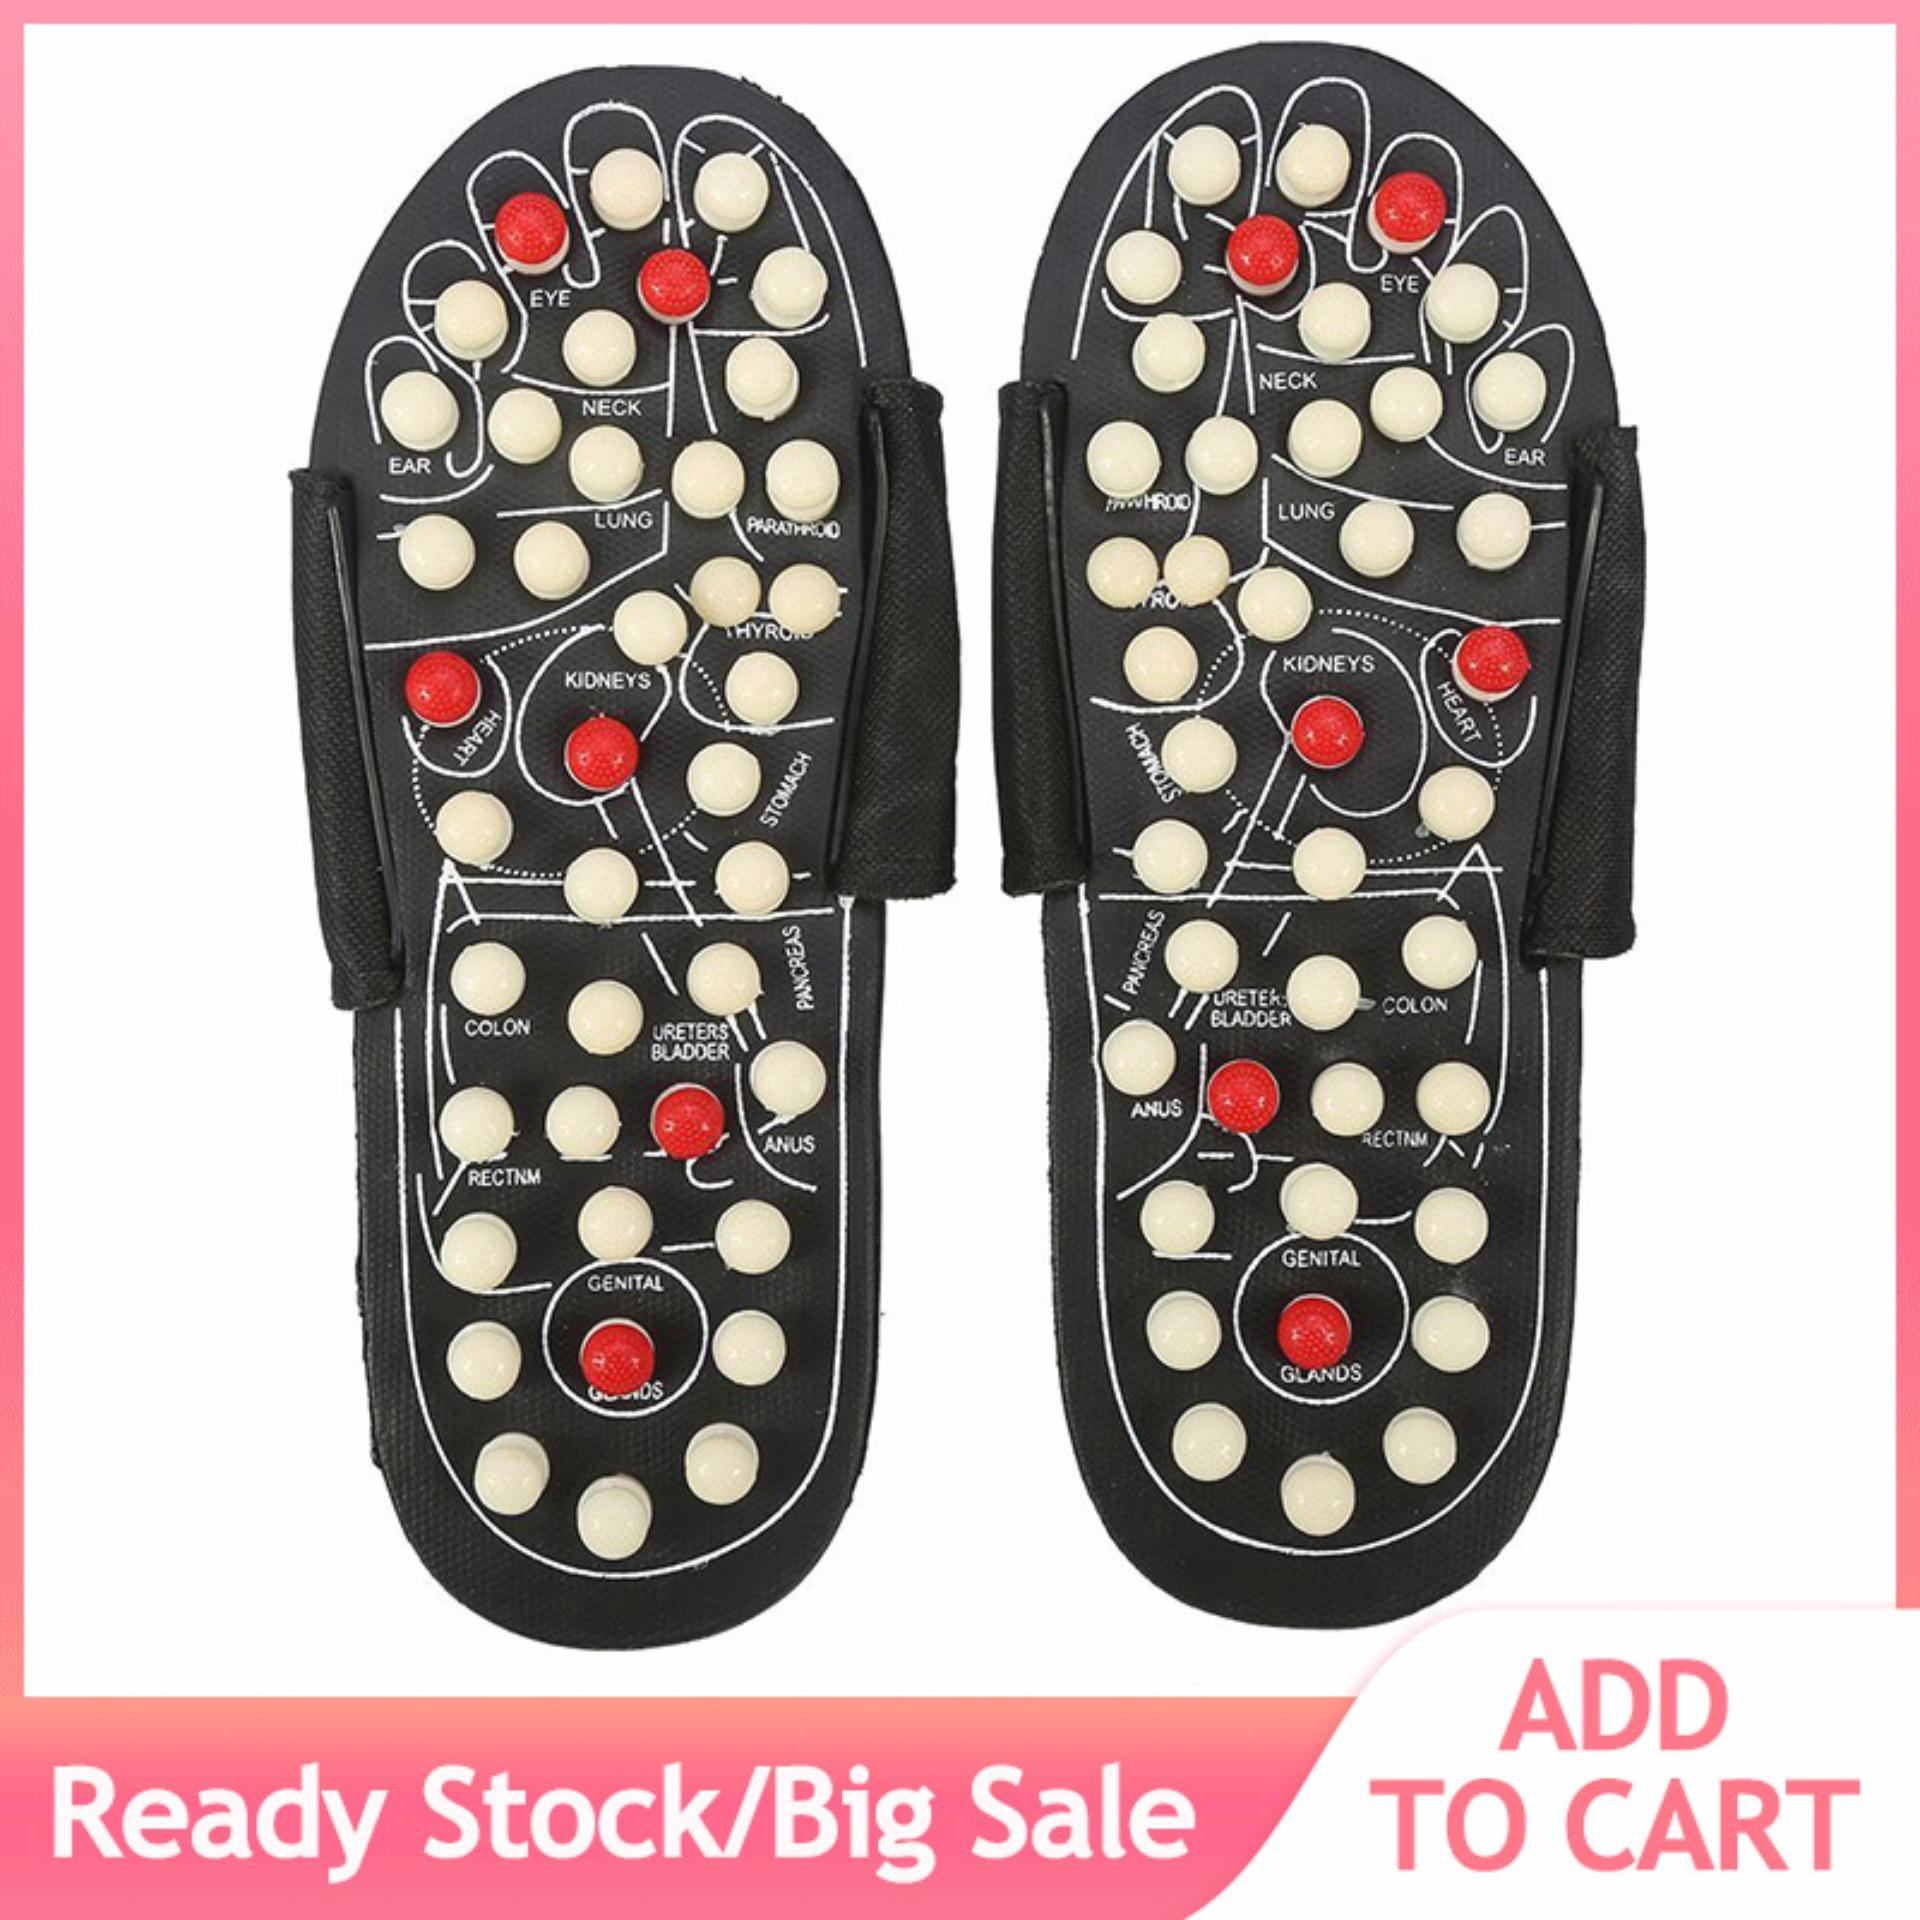 bc0b49a1c04f Magnet Therapy Foot Massager Shoes Health Care Massage Slippers (42-43  Rotating Dots)